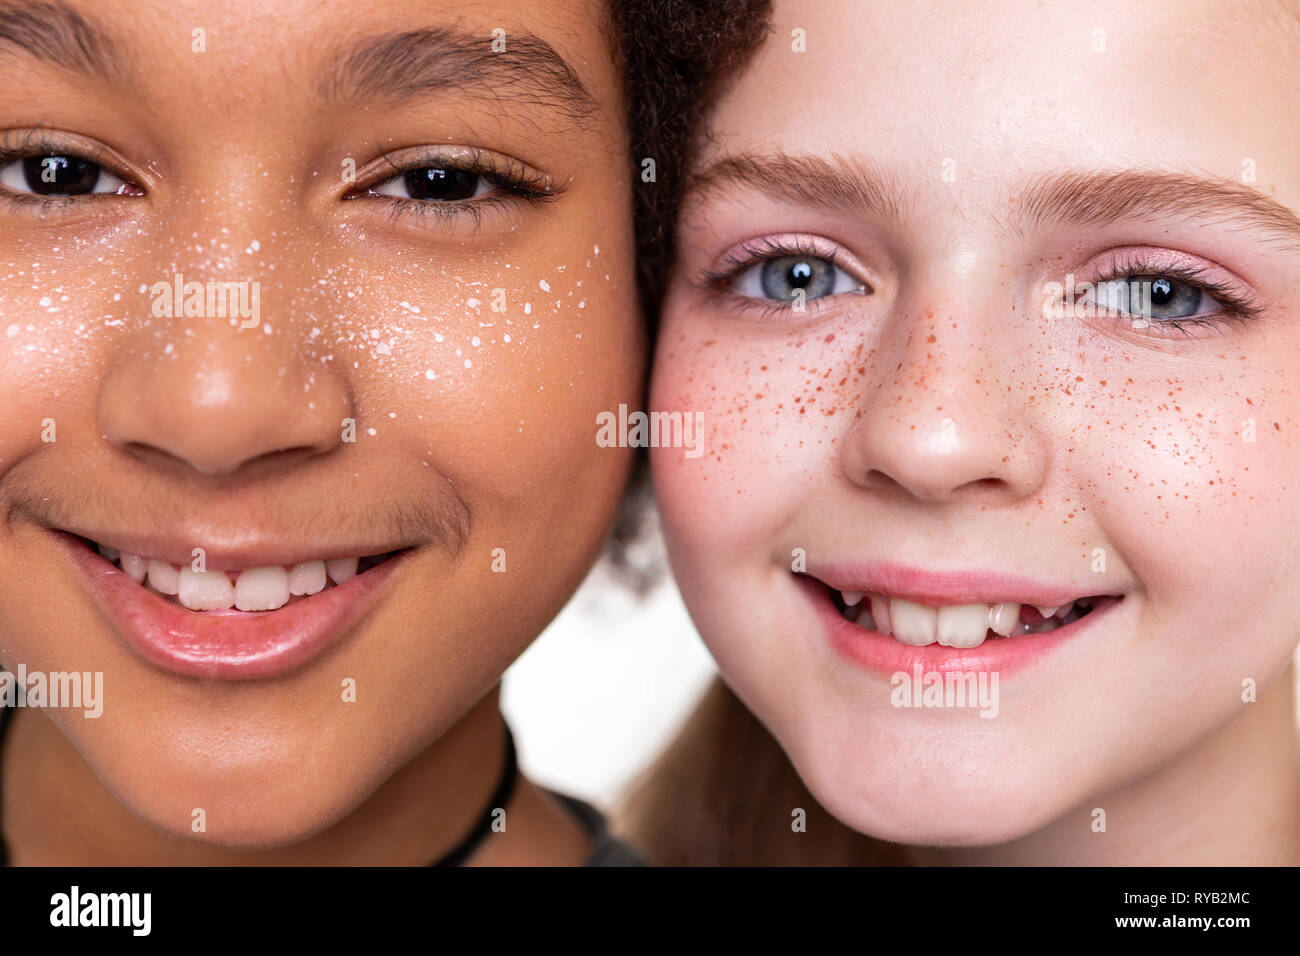 Good-looking flawless kids looking completely different while posing - Stock Image